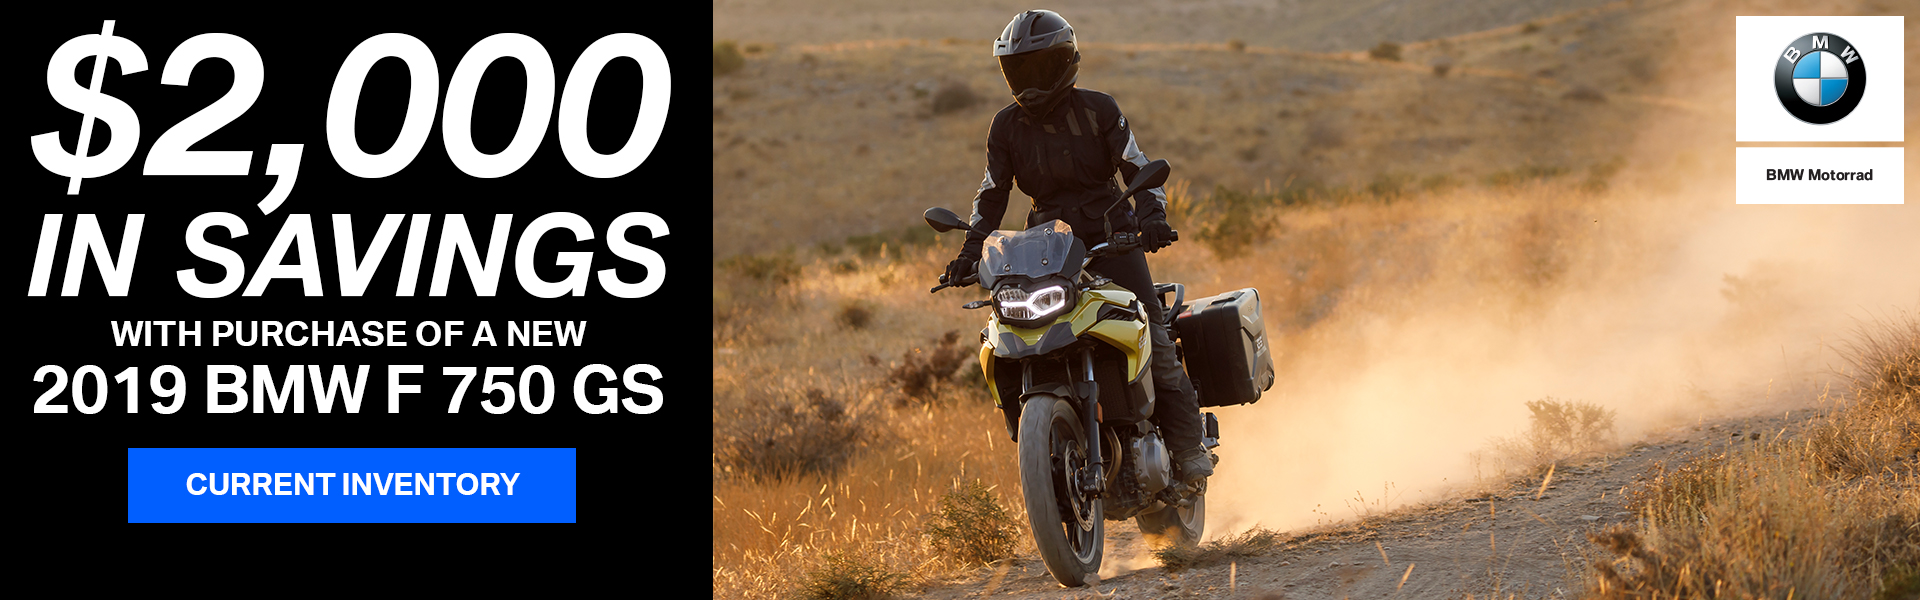 $2000 in Savings with Purchase of a new 2019 BMW F750 GS